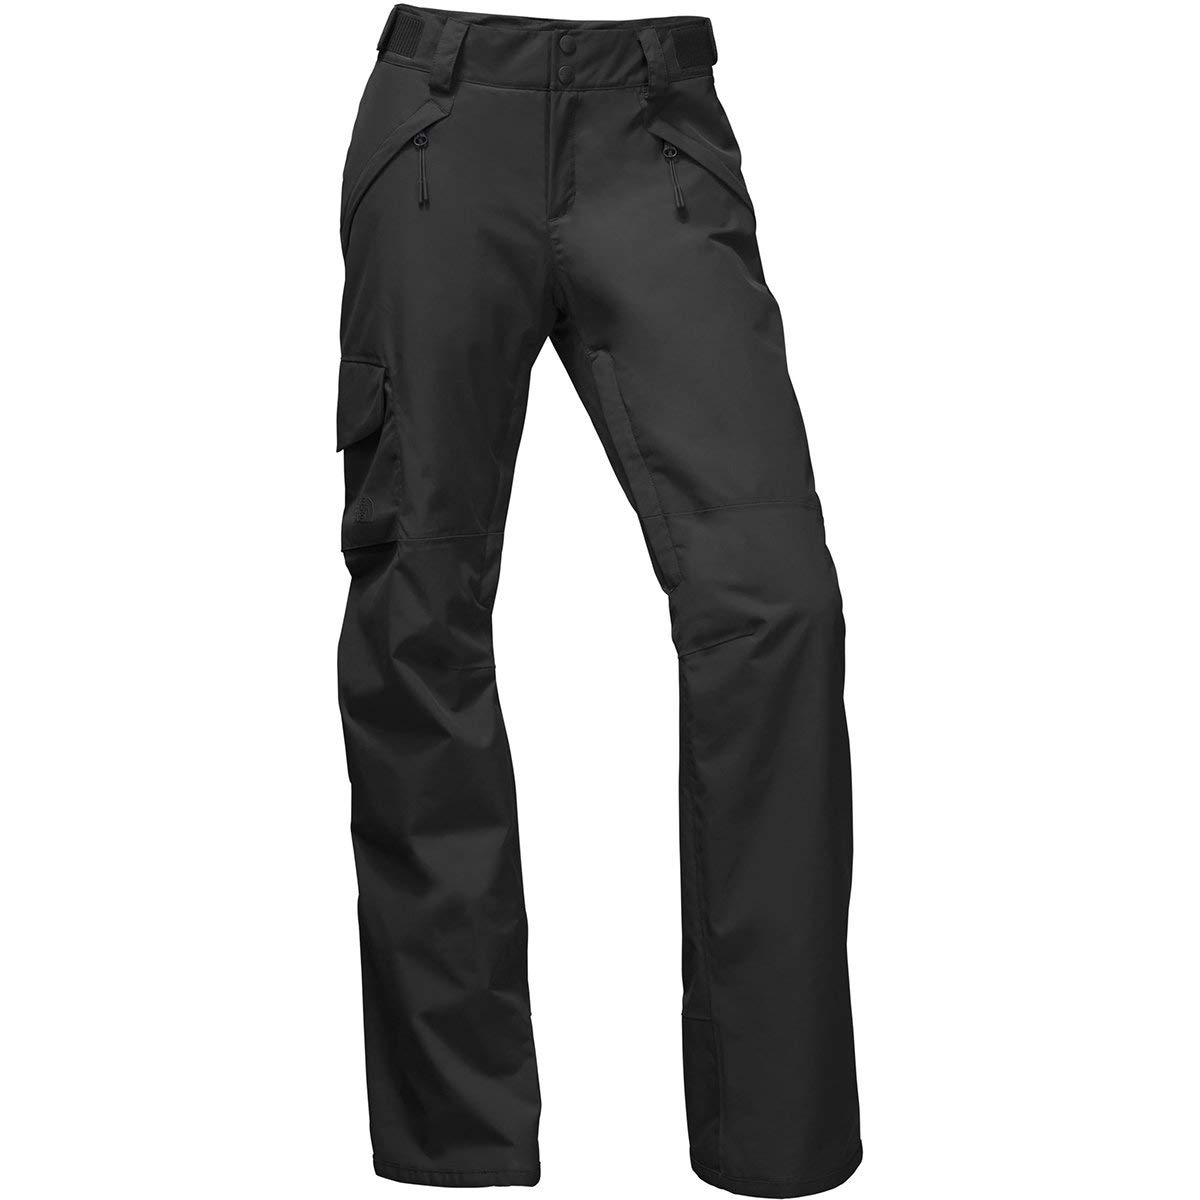 North Face Pant.jpg